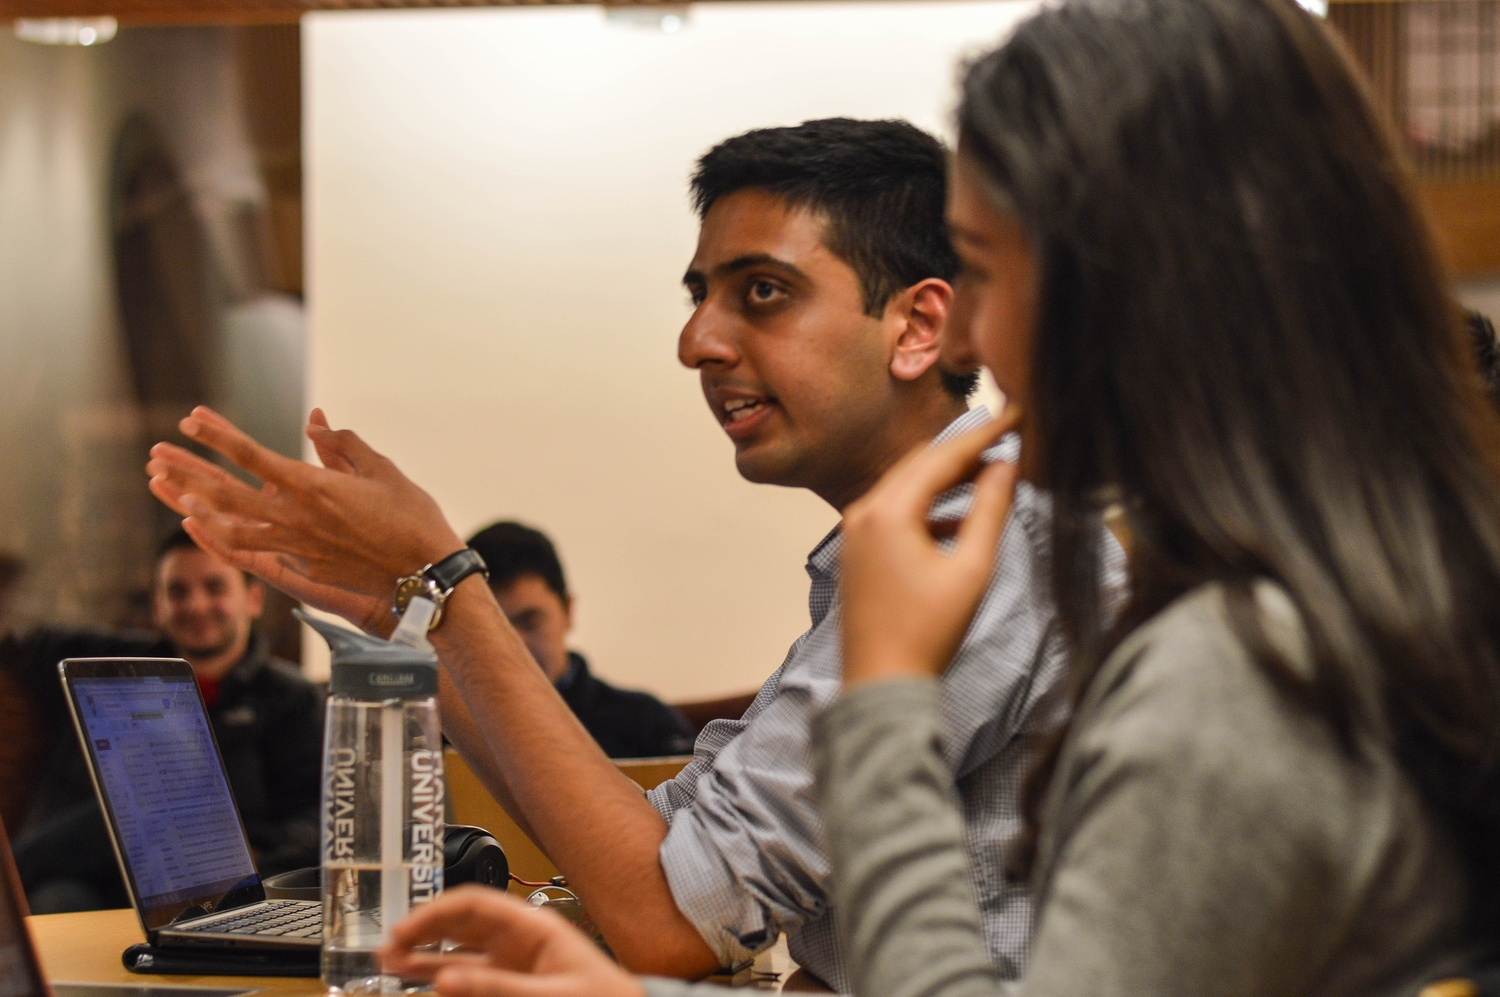 Undergraduate Council Vice President Dhruv P. Goyal '16 leads the Feb. 8 weekly UC meeting from the center of Ticknor Lounge alongside UC President Ava Nasrollahzadeh '16.  Topics discussed in the evening included outreach to potential UC candidates and a condom dispenser initiative.